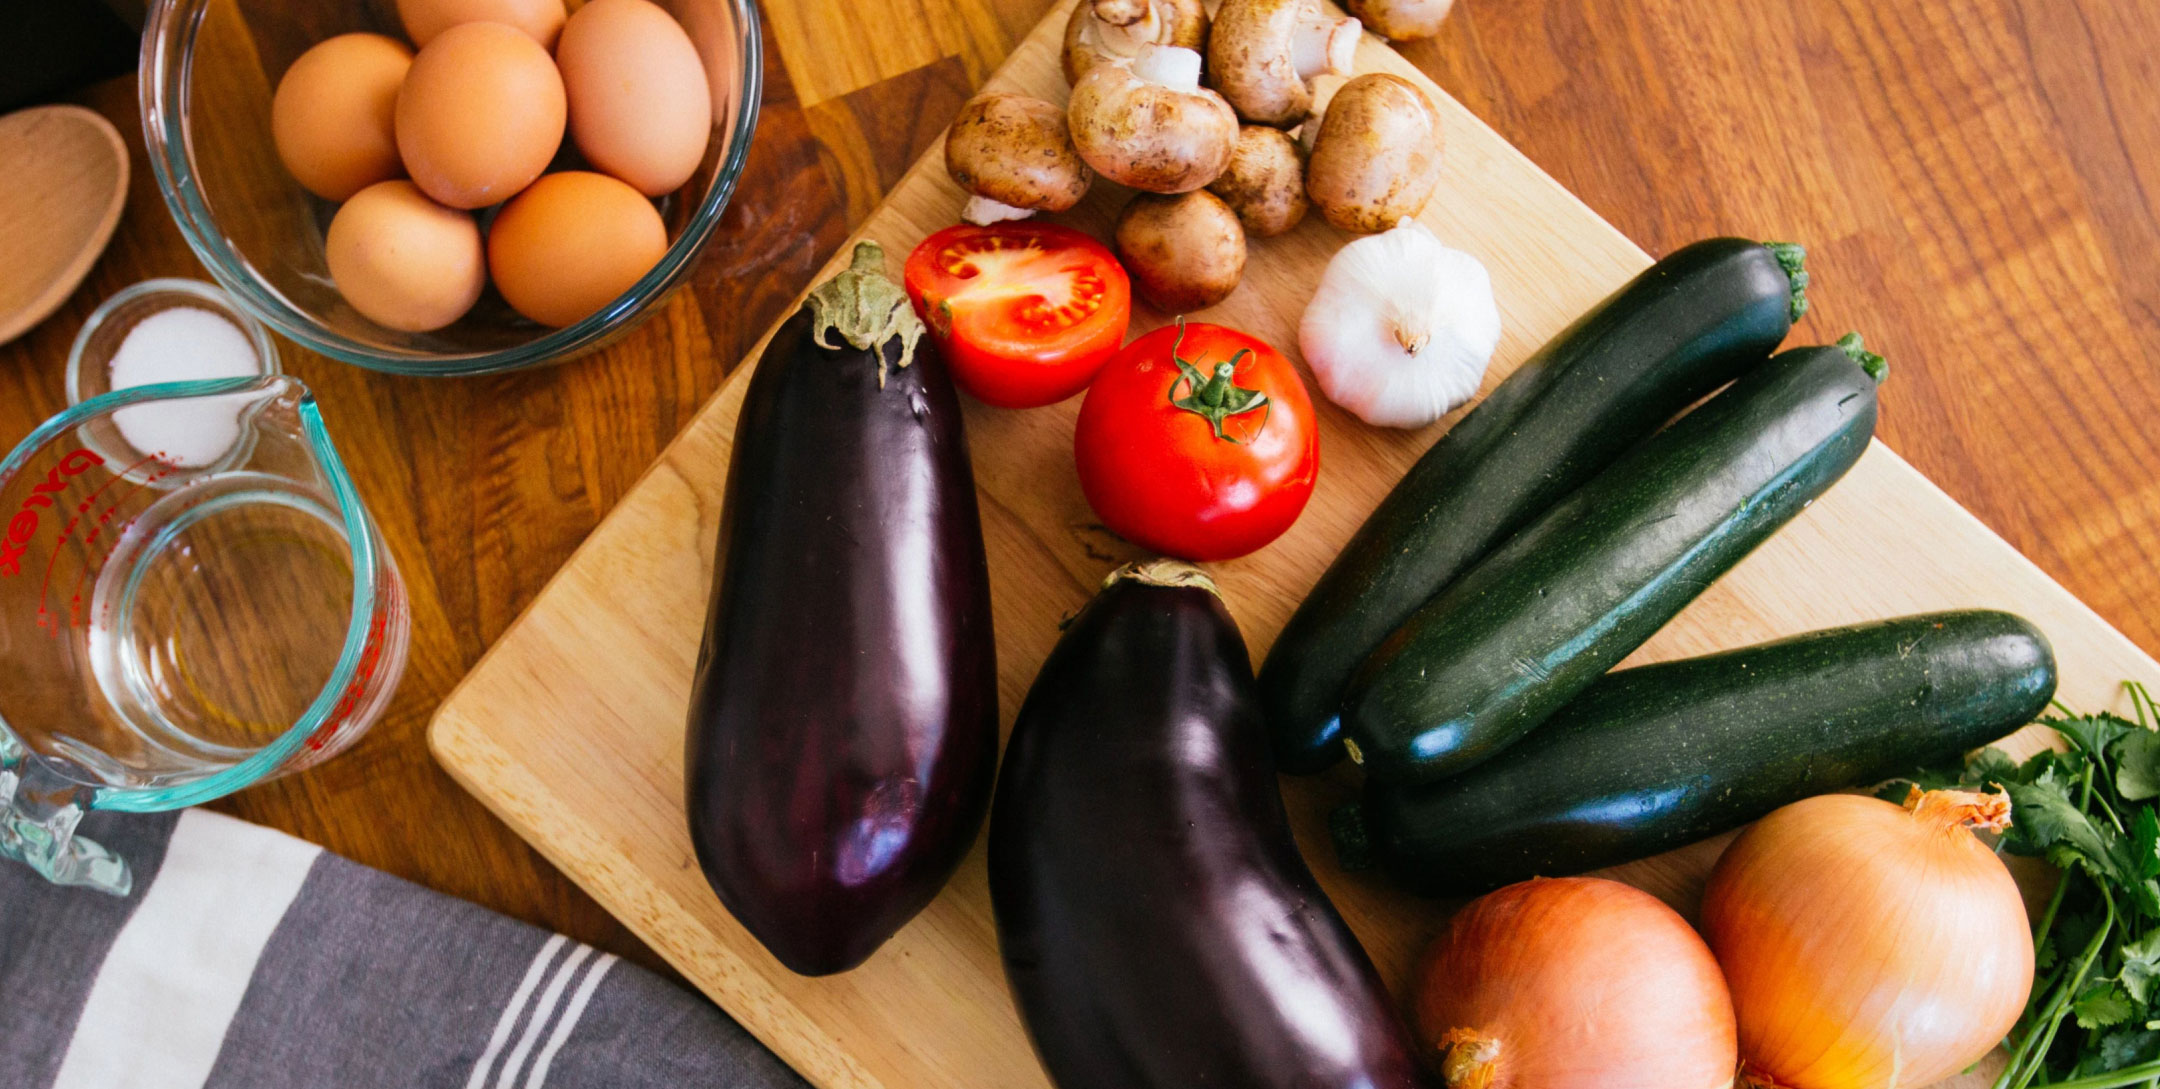 Fresh vegetables on cutting board and eggs in bowl